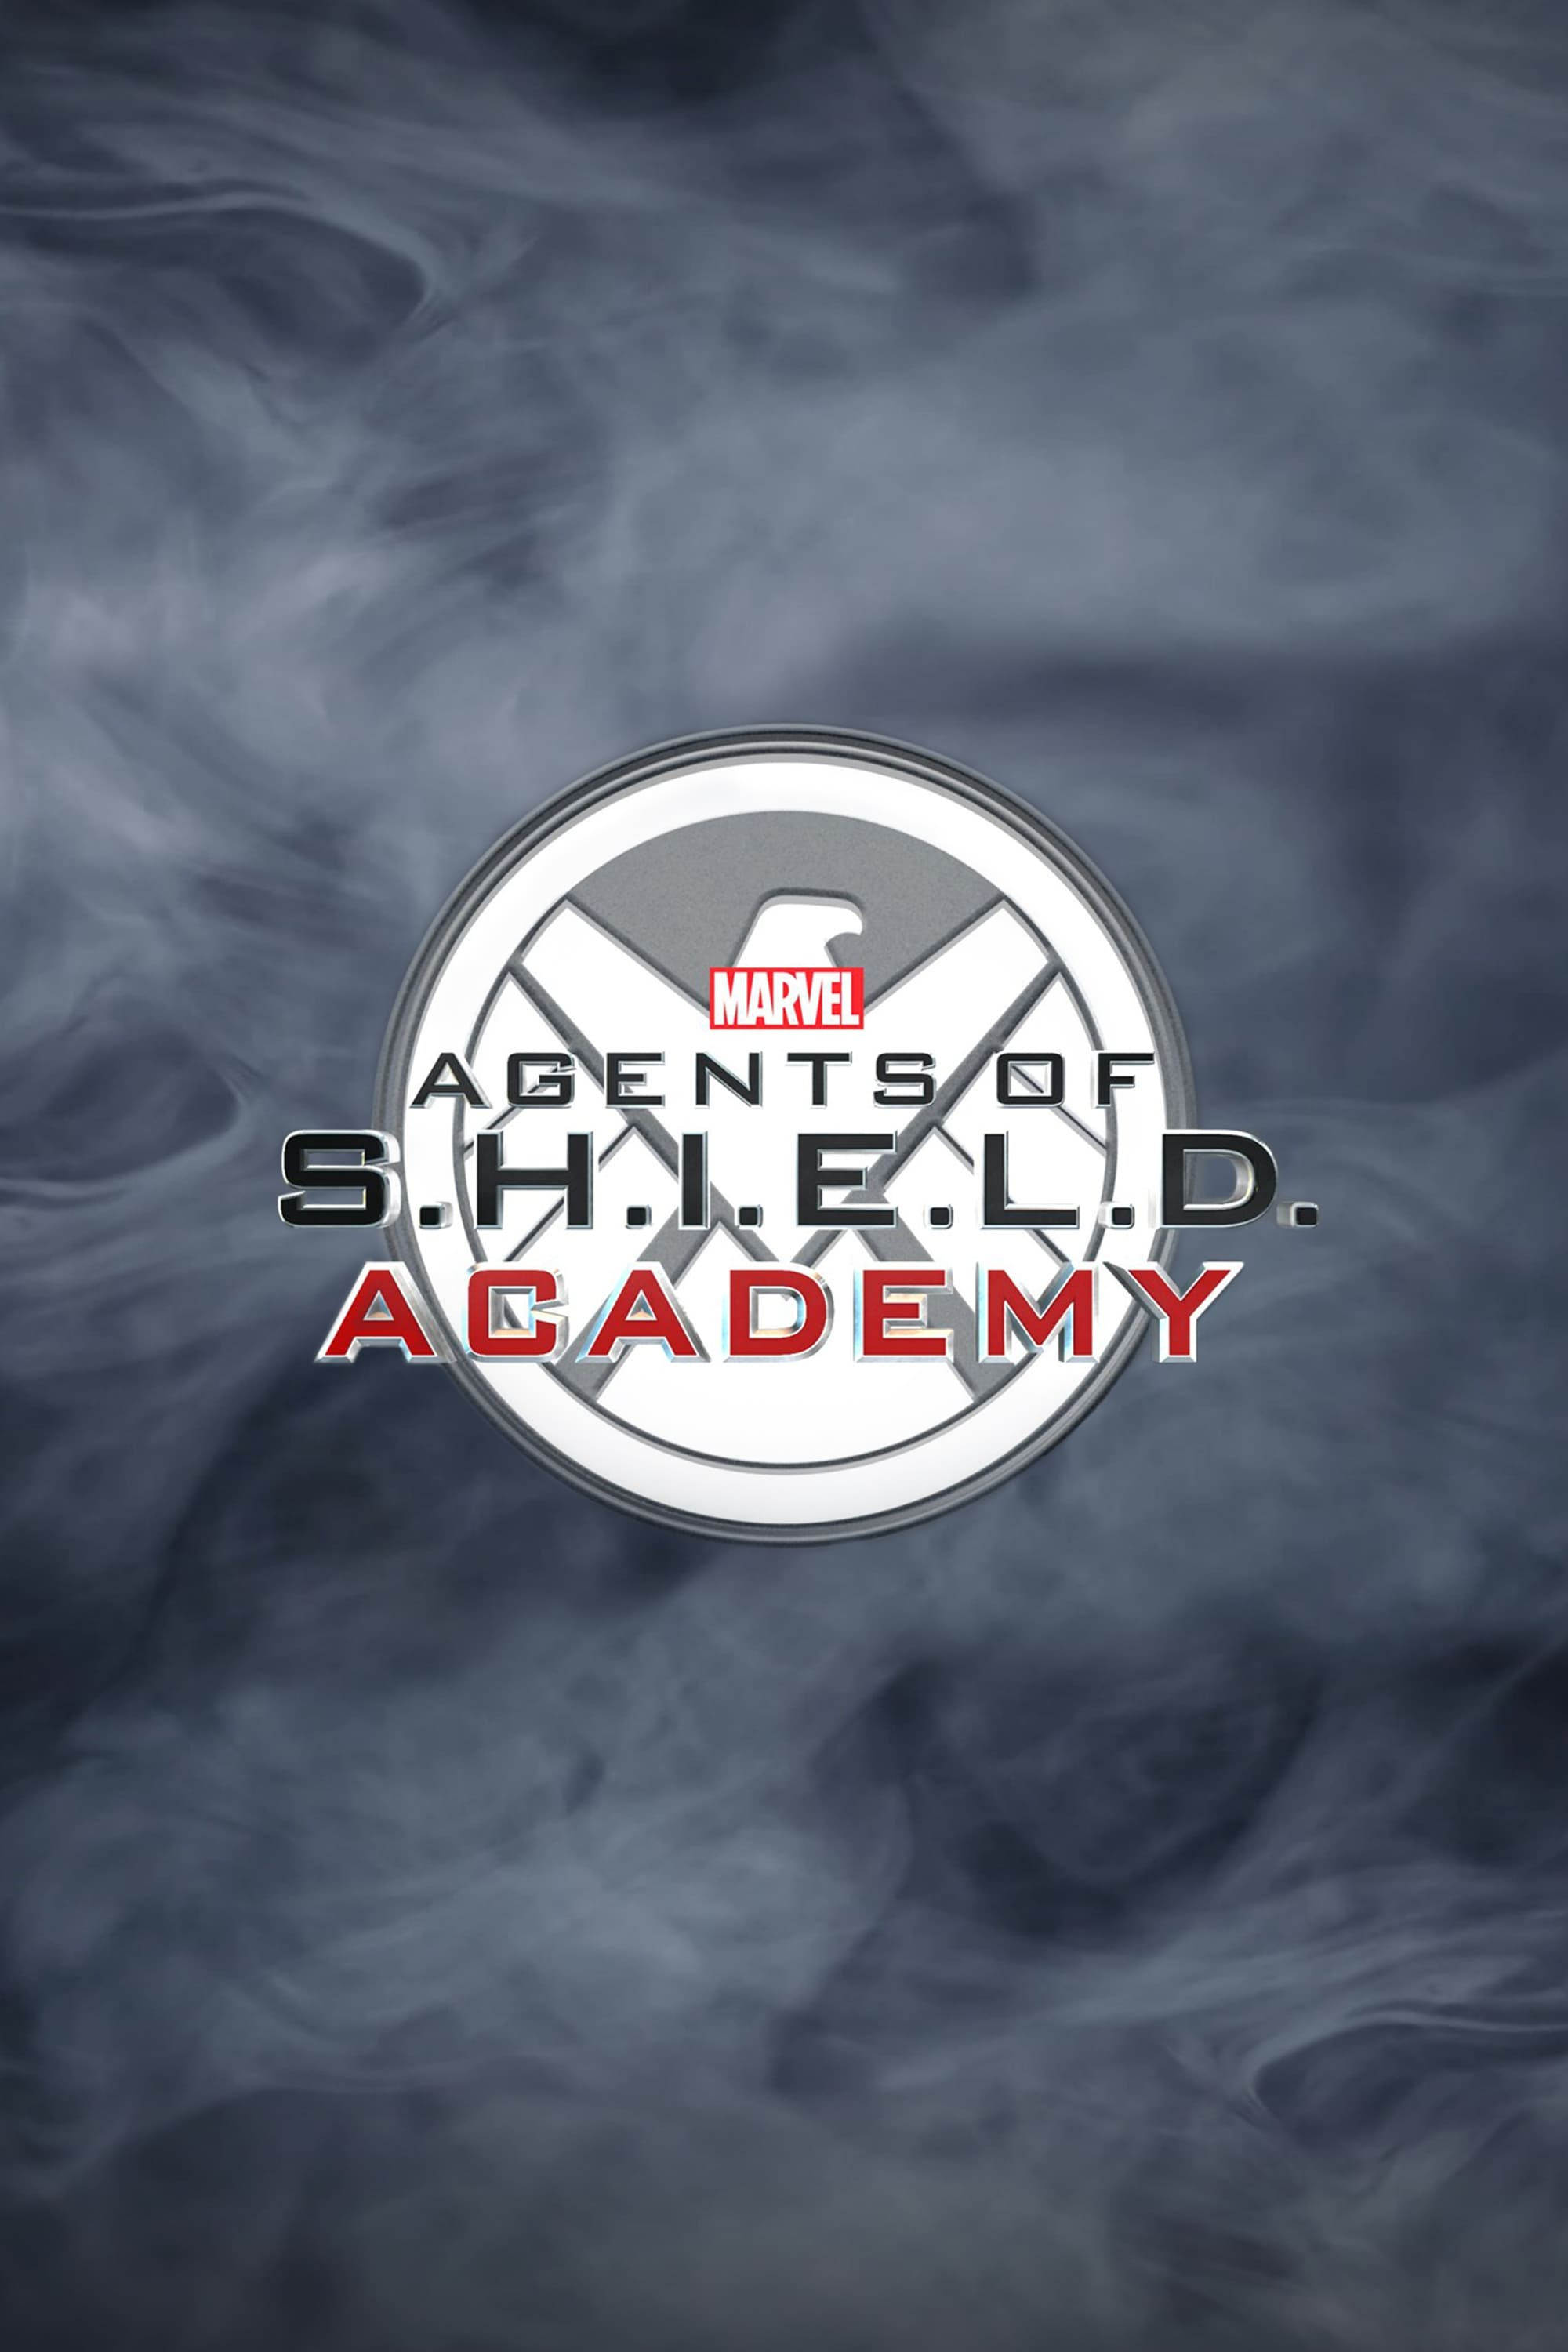 Marvel's Agents of S.H.I.E.L.D.: Academy (2016)